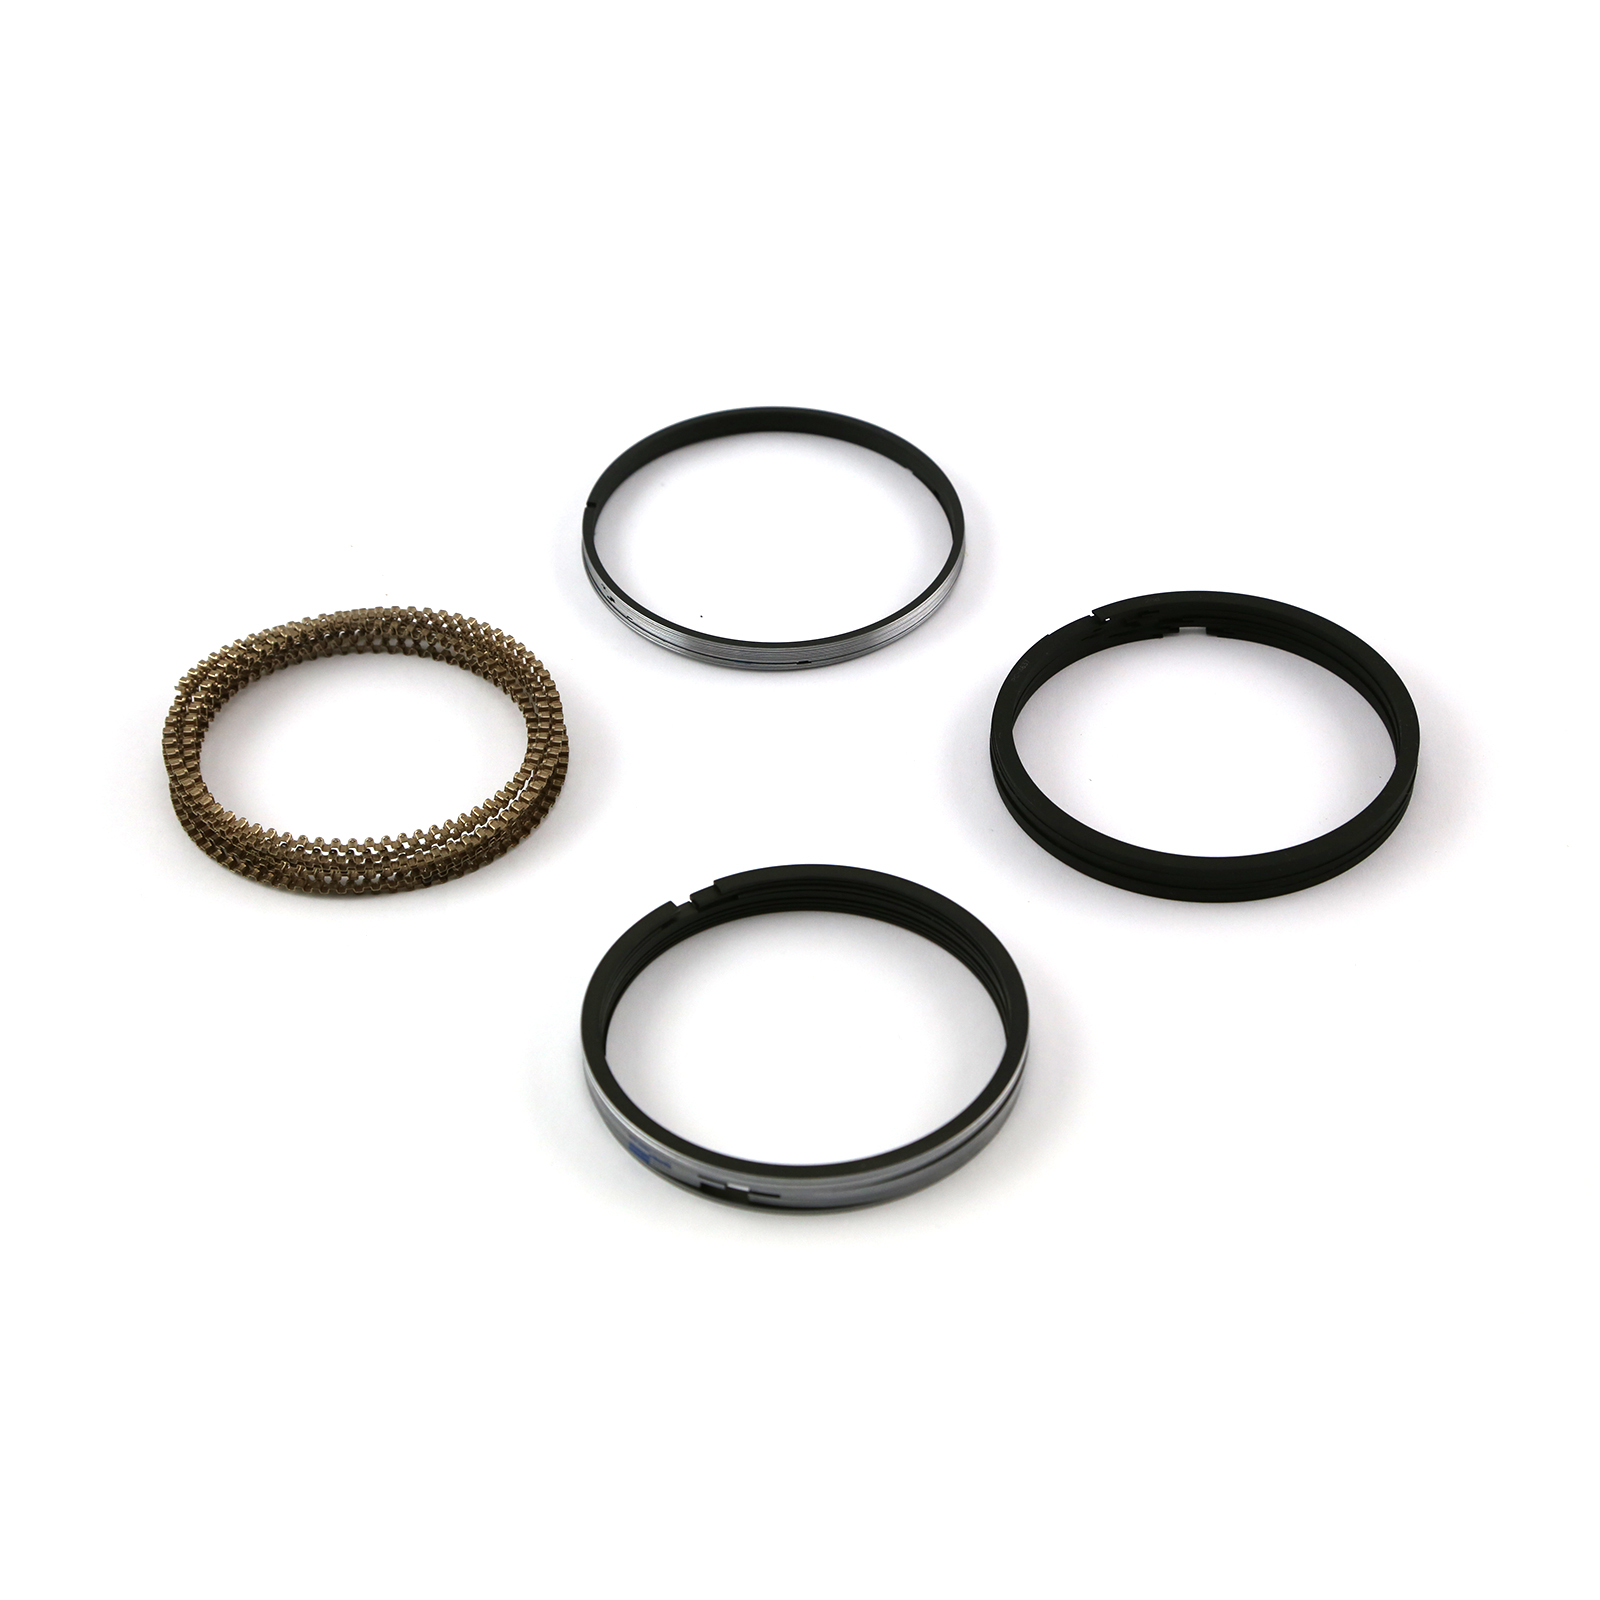 "4.060"" Bore - 1.5 - 1.5 - 3mm Plasma Moly Piston Ring Set"